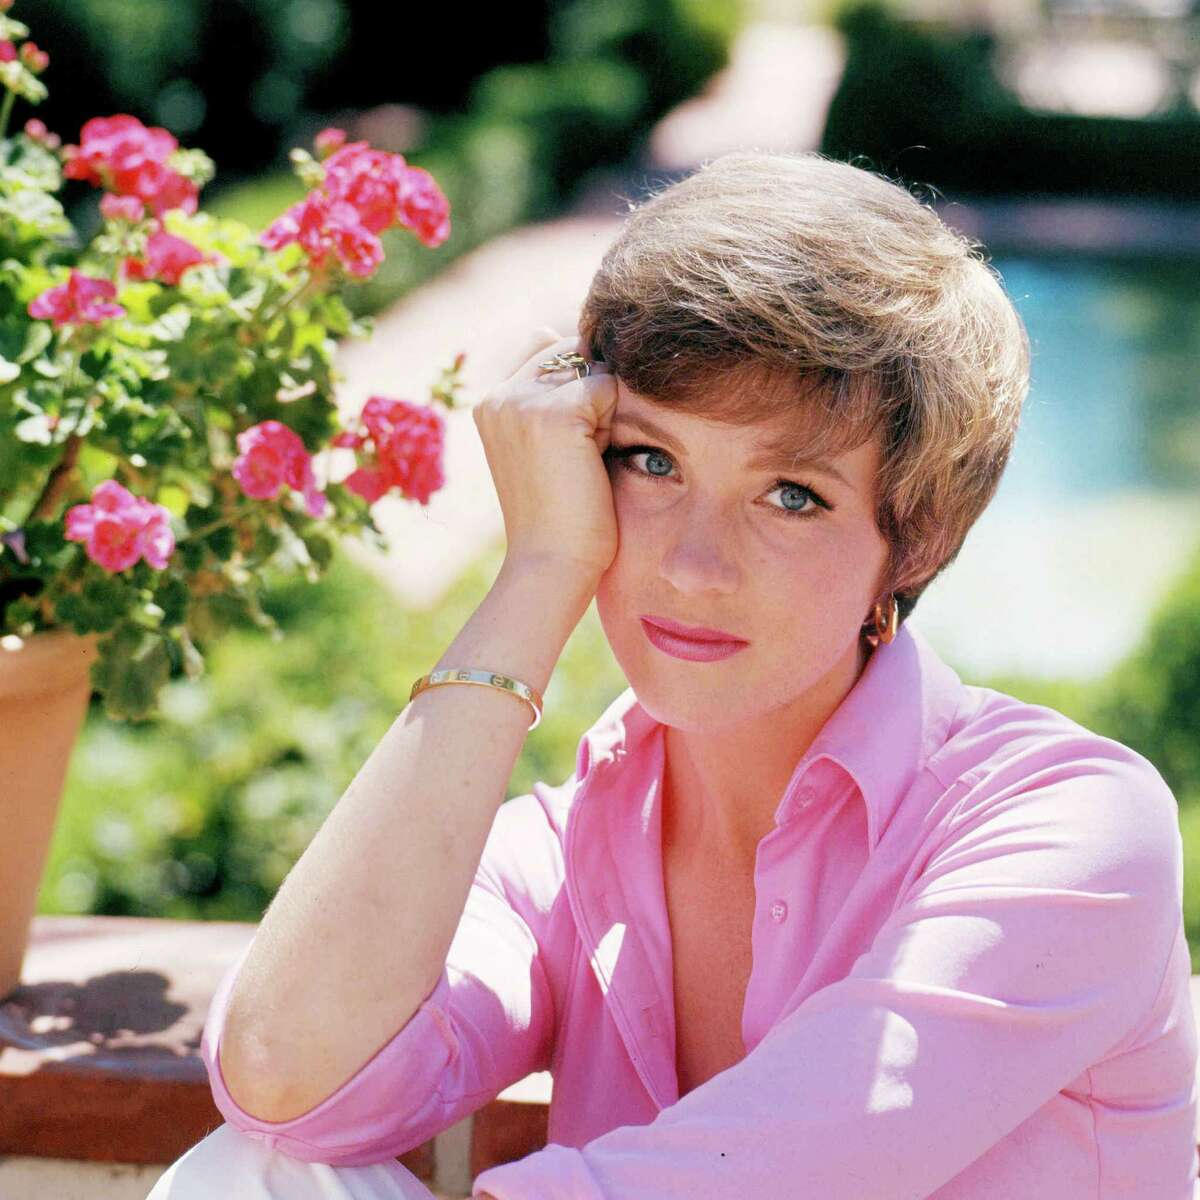 In the 1970s, after years of uncritical and even fawning presentation of their stars, studios began to portray actors in the kinds of rough edges they brought to some of their roles. But change came slowly, and publicity shots were still largely positive. A good example of this was Julie Andrews, who had to wait until the 1980s to escape the bulk of her Disneyesque image.